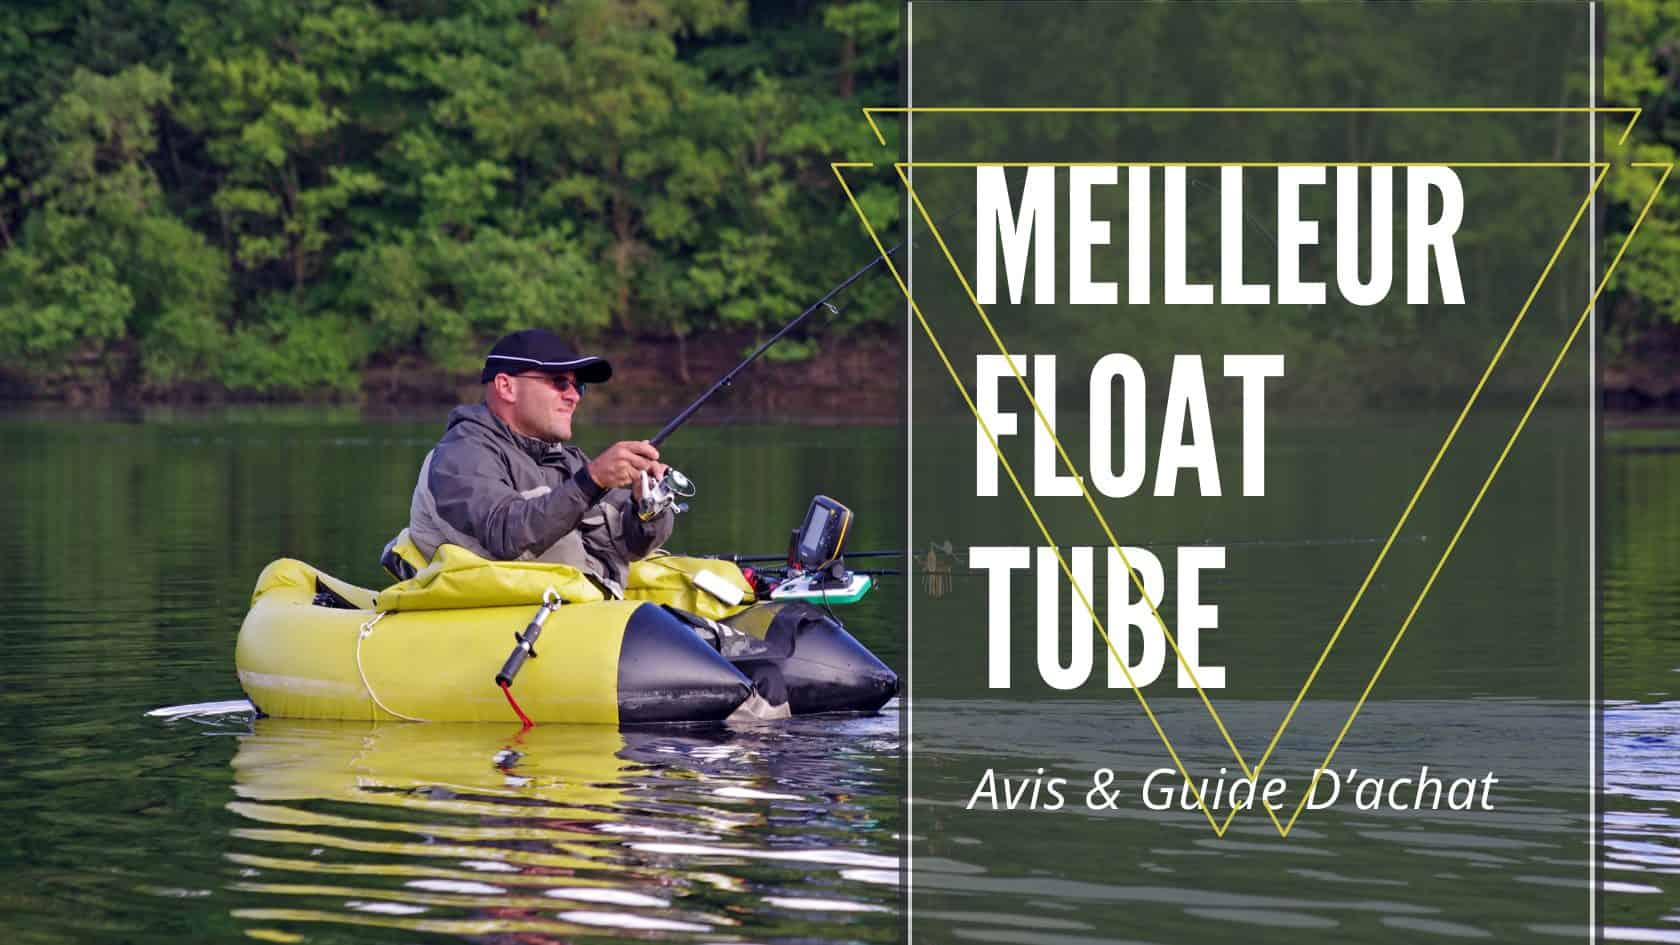 Meilleur Float Tube